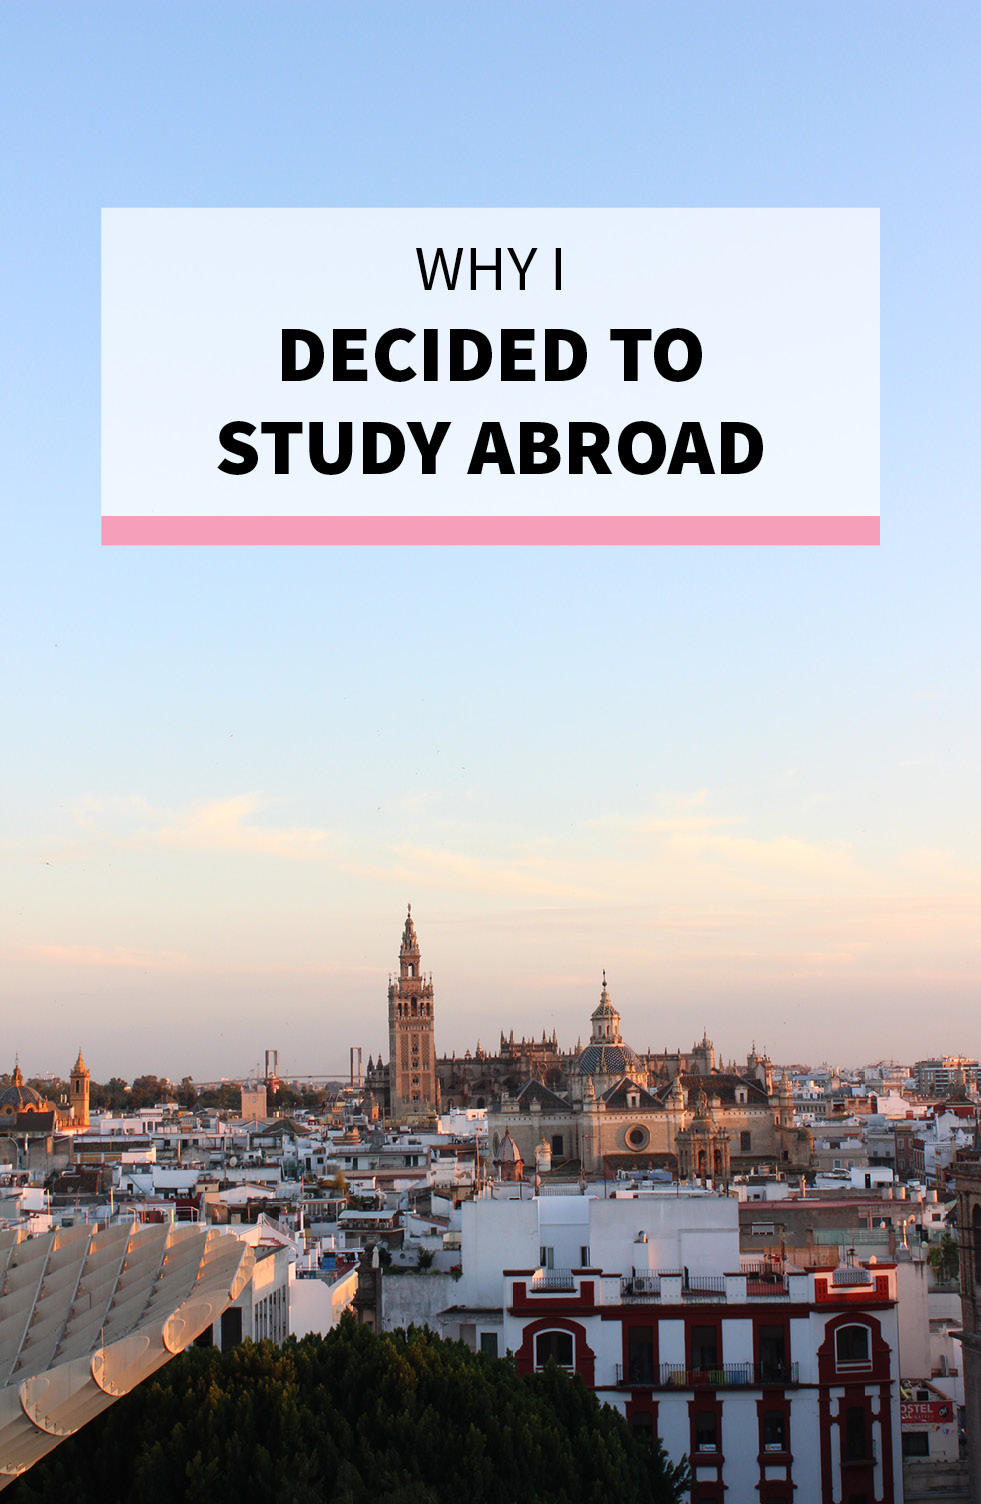 Why I Decided to Study Abroad